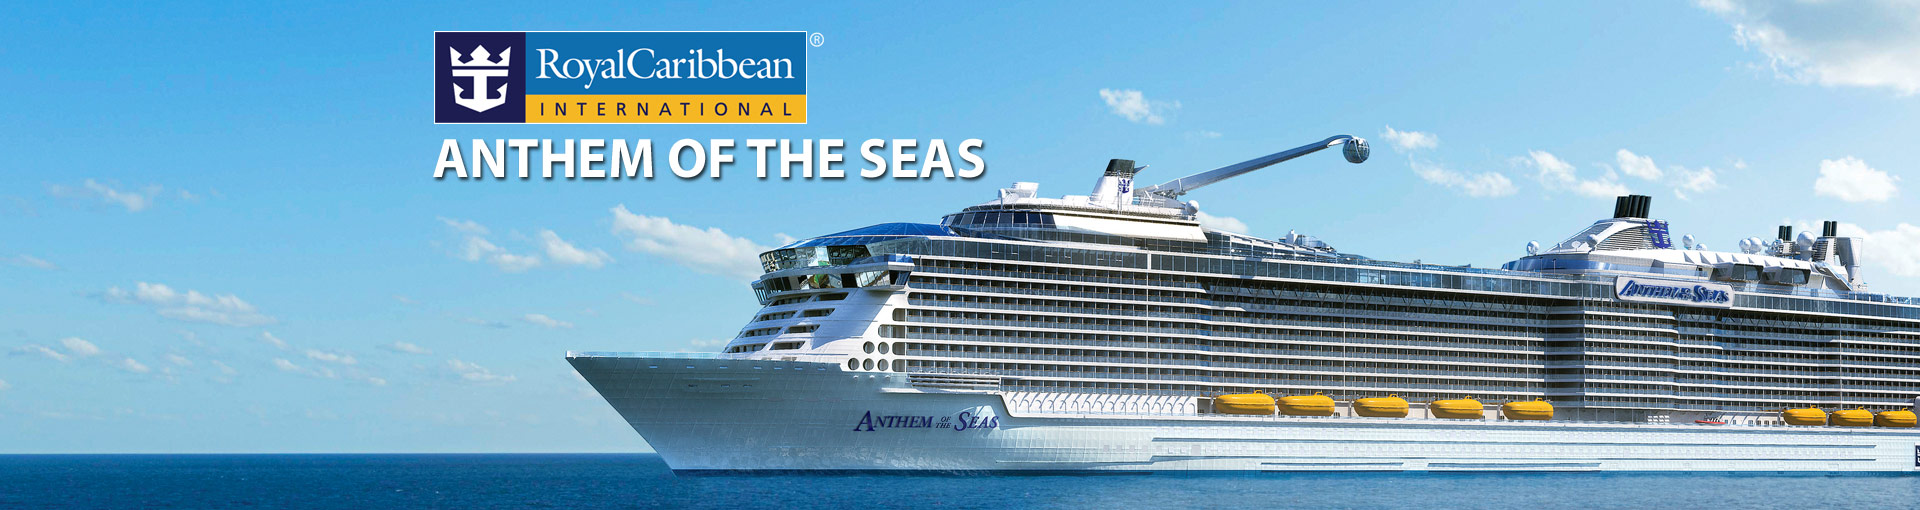 Royal Caribbeans Anthem Of The Seas Cruise Ship And - Cruise ship caribbean